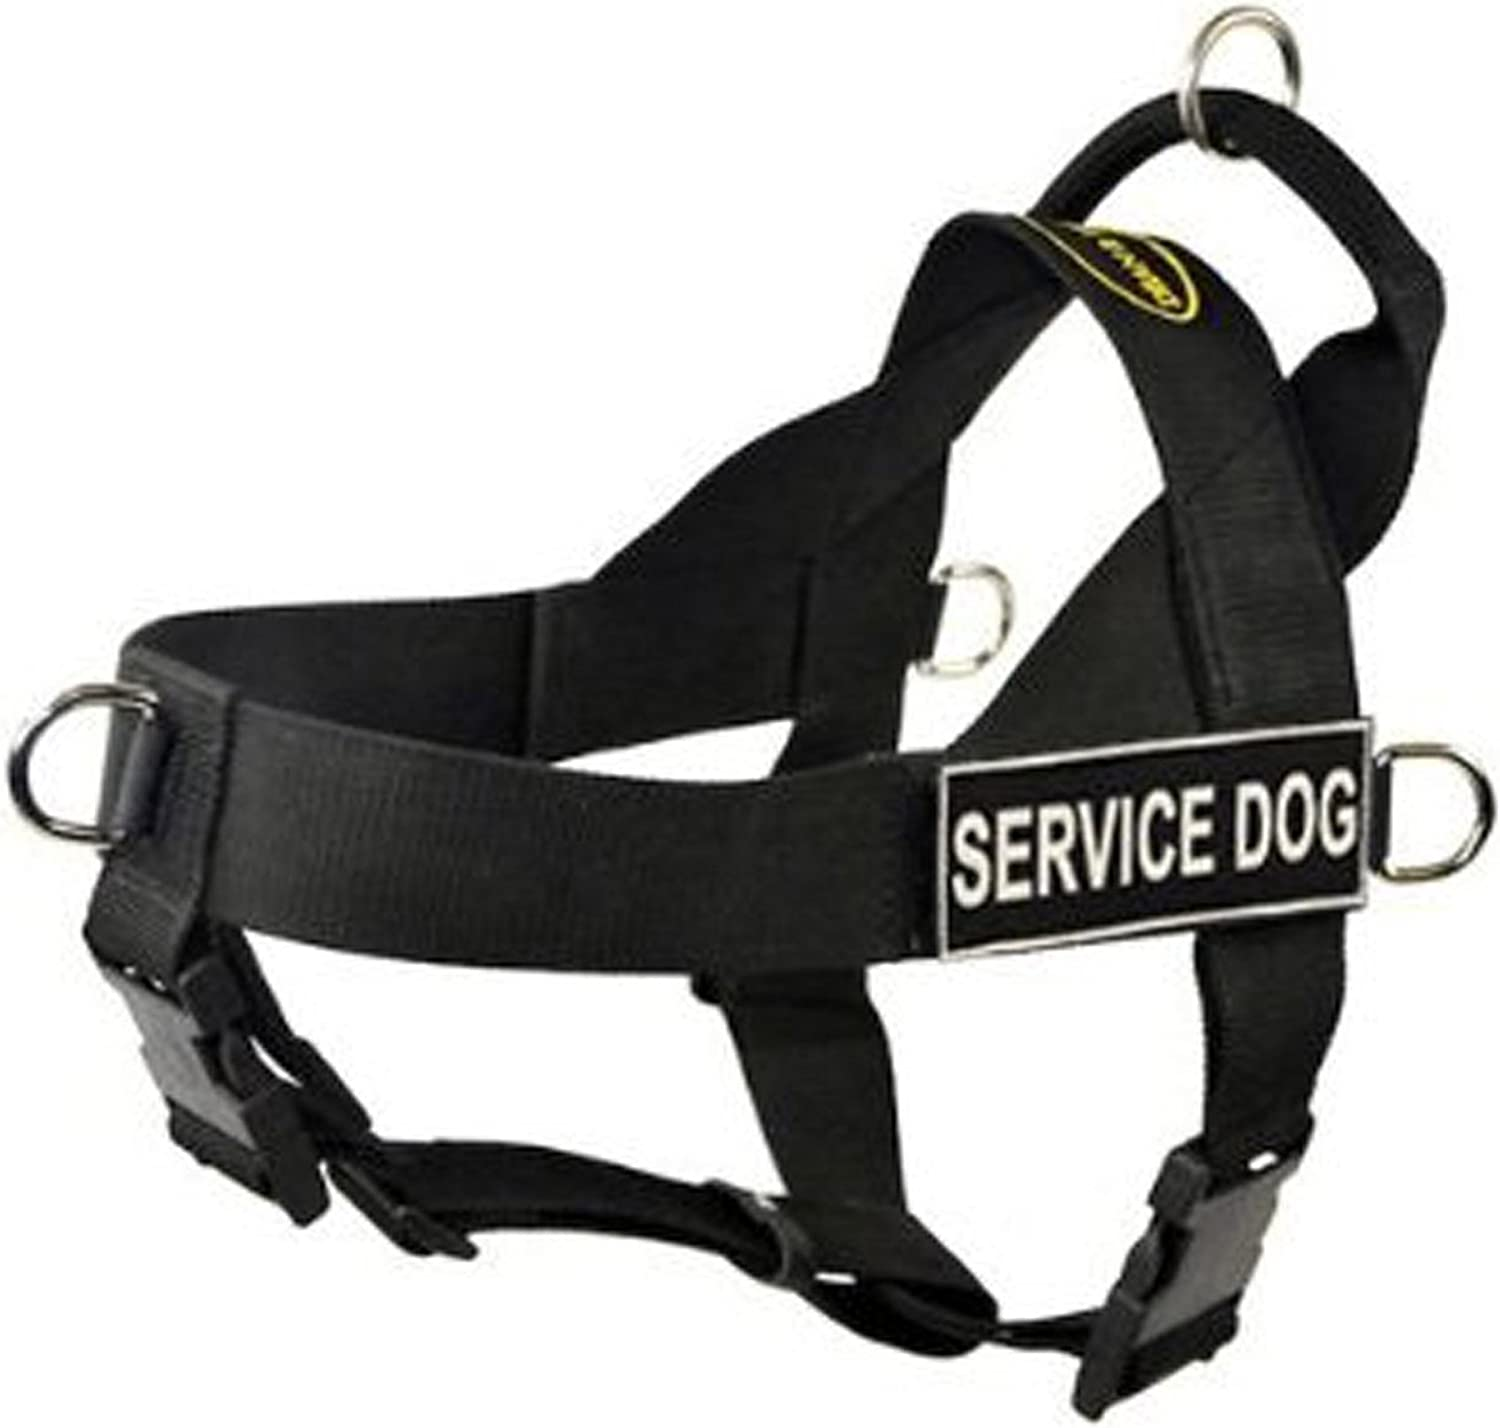 DT Universal No Pull Dog Harness, Service Dog, Black, Large  Fits Girth Size  79cm to 107cm